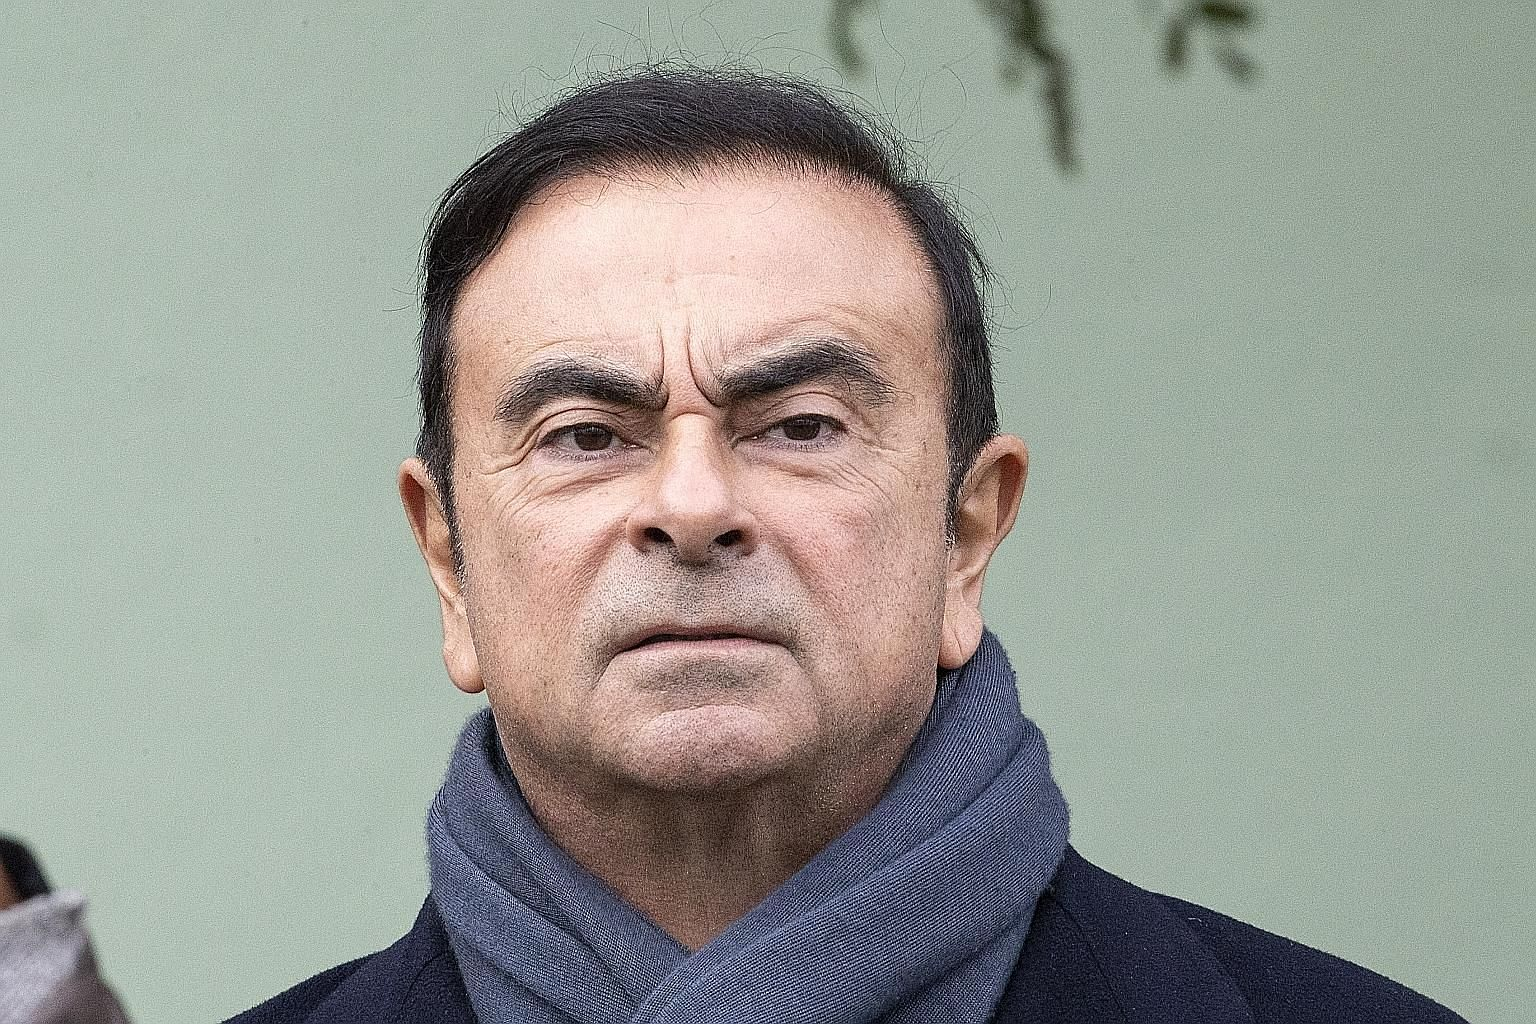 Mr Carlos Ghosn was unanimously removed as Mitsubishi chairman and representative director, the company said.